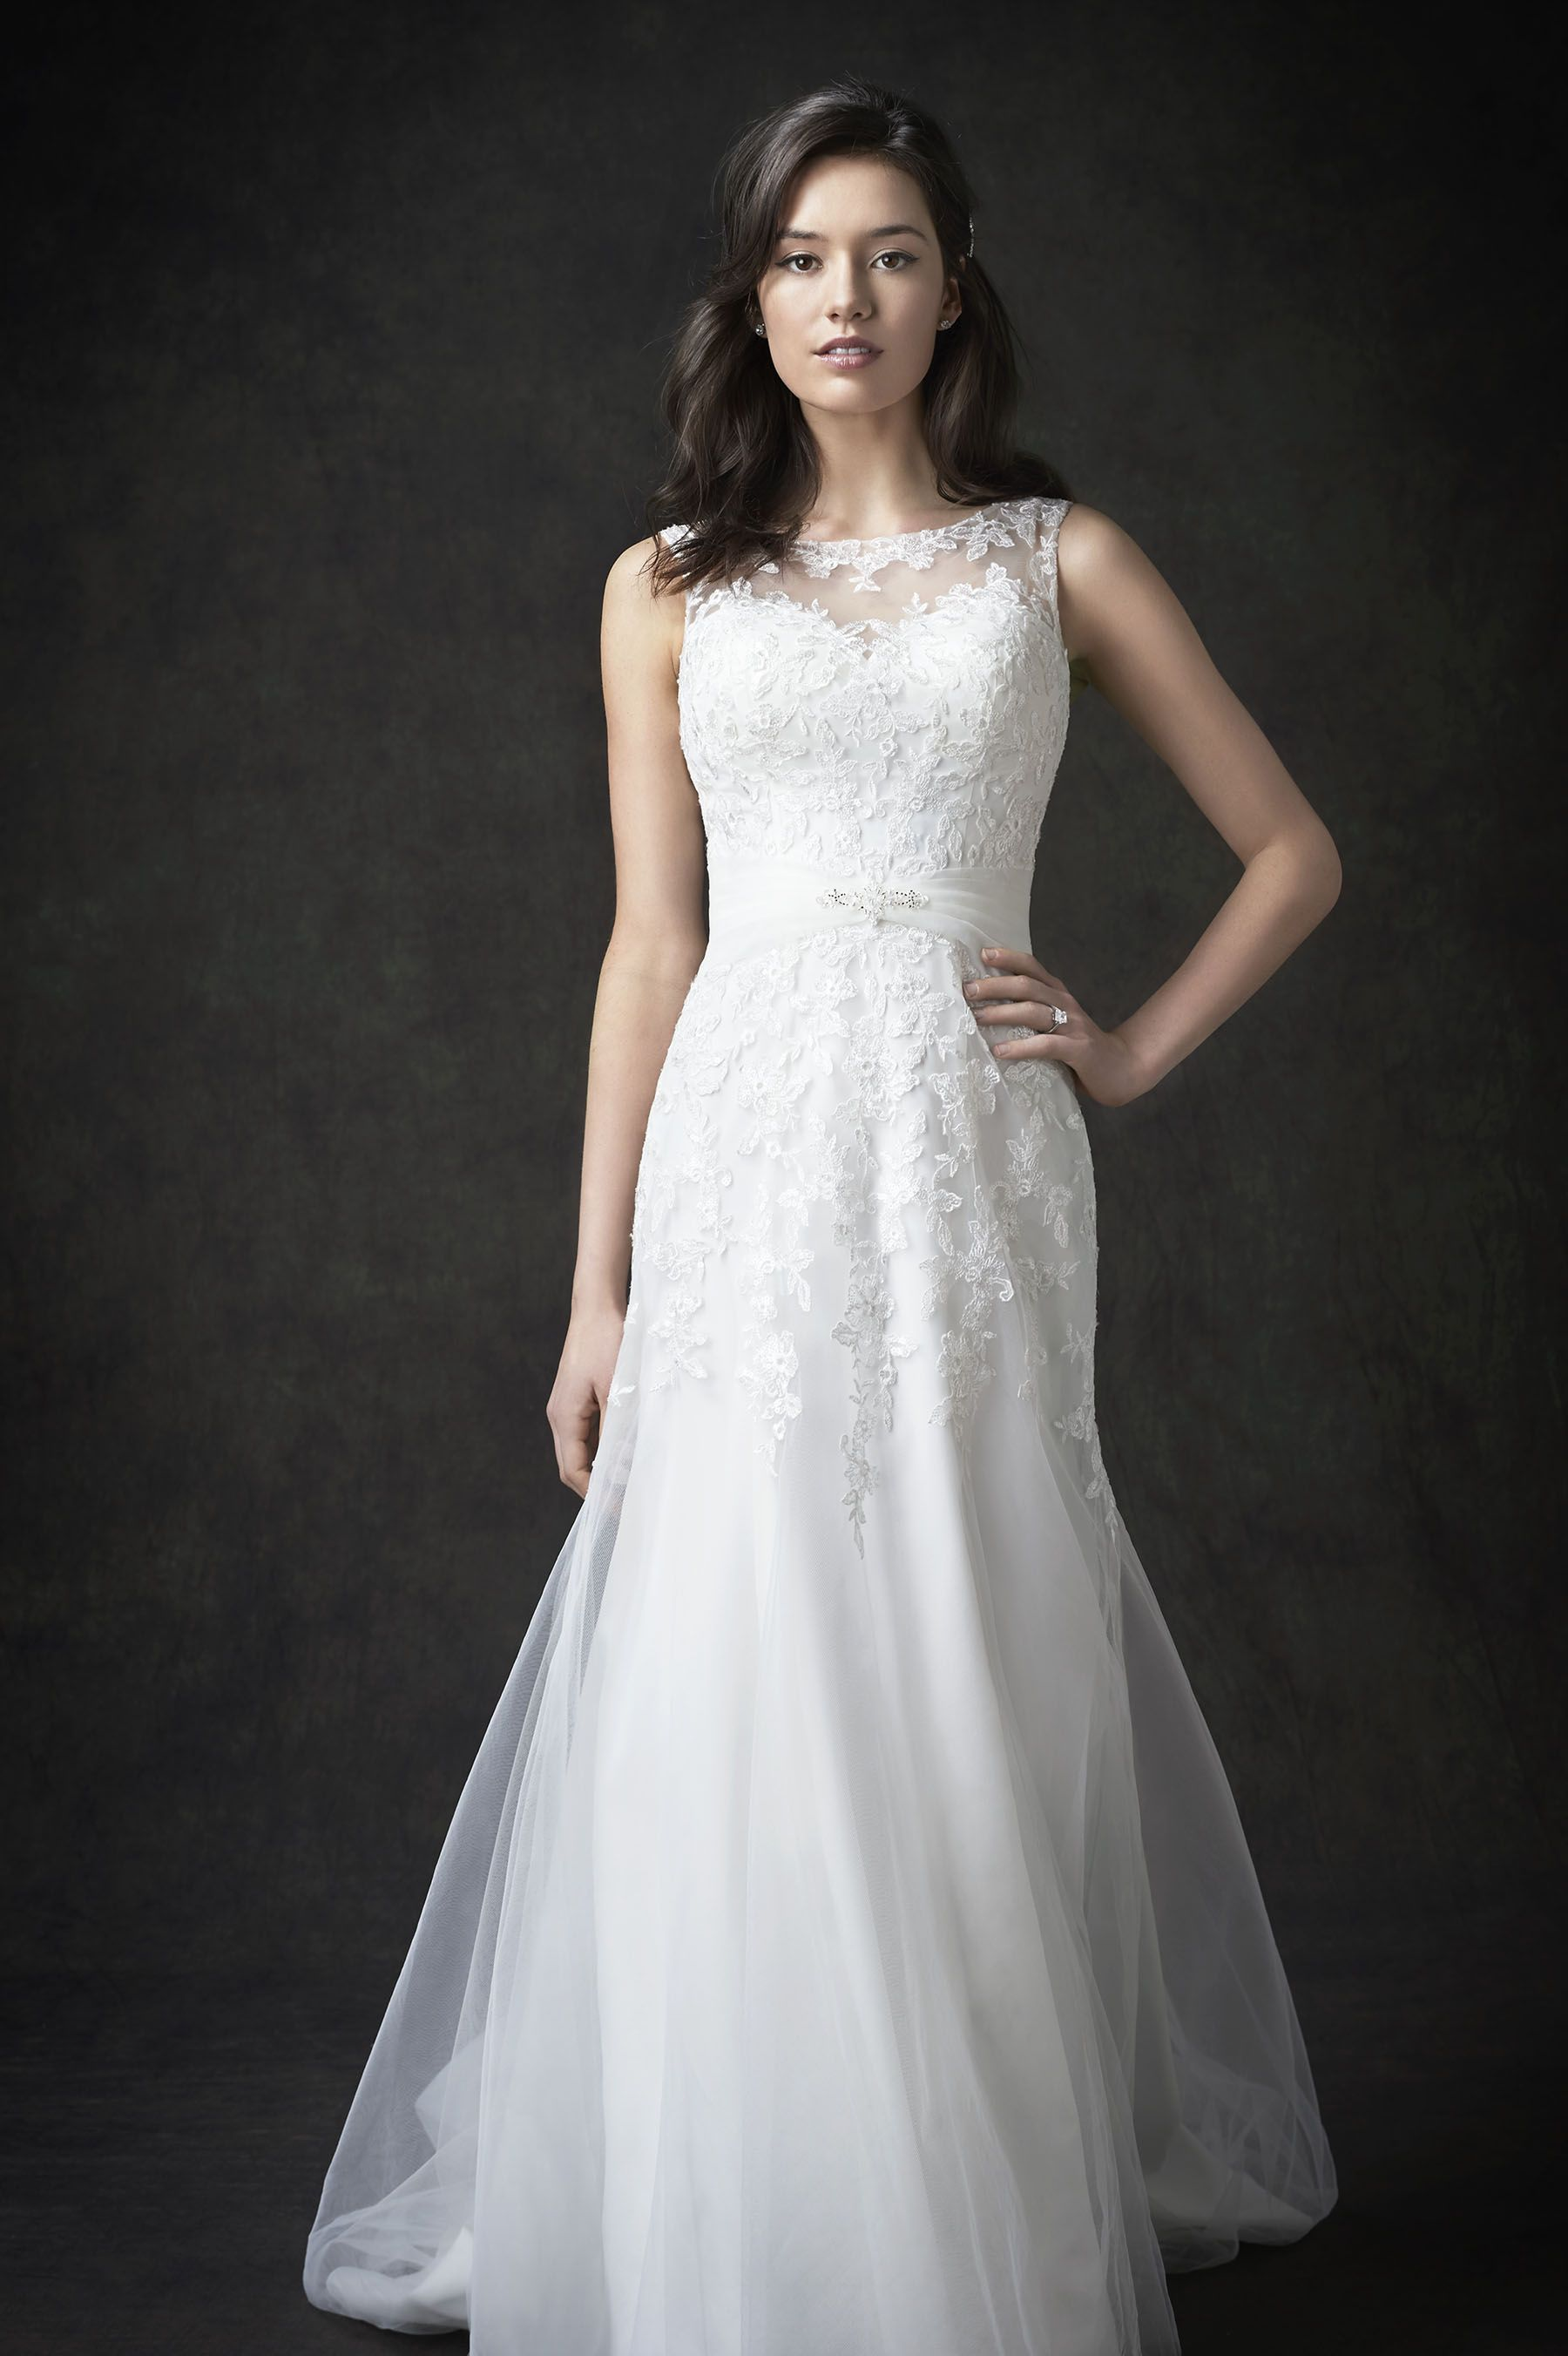 Gallery Style GA2289 | stunning lace bridal gown with sheer illusion ...